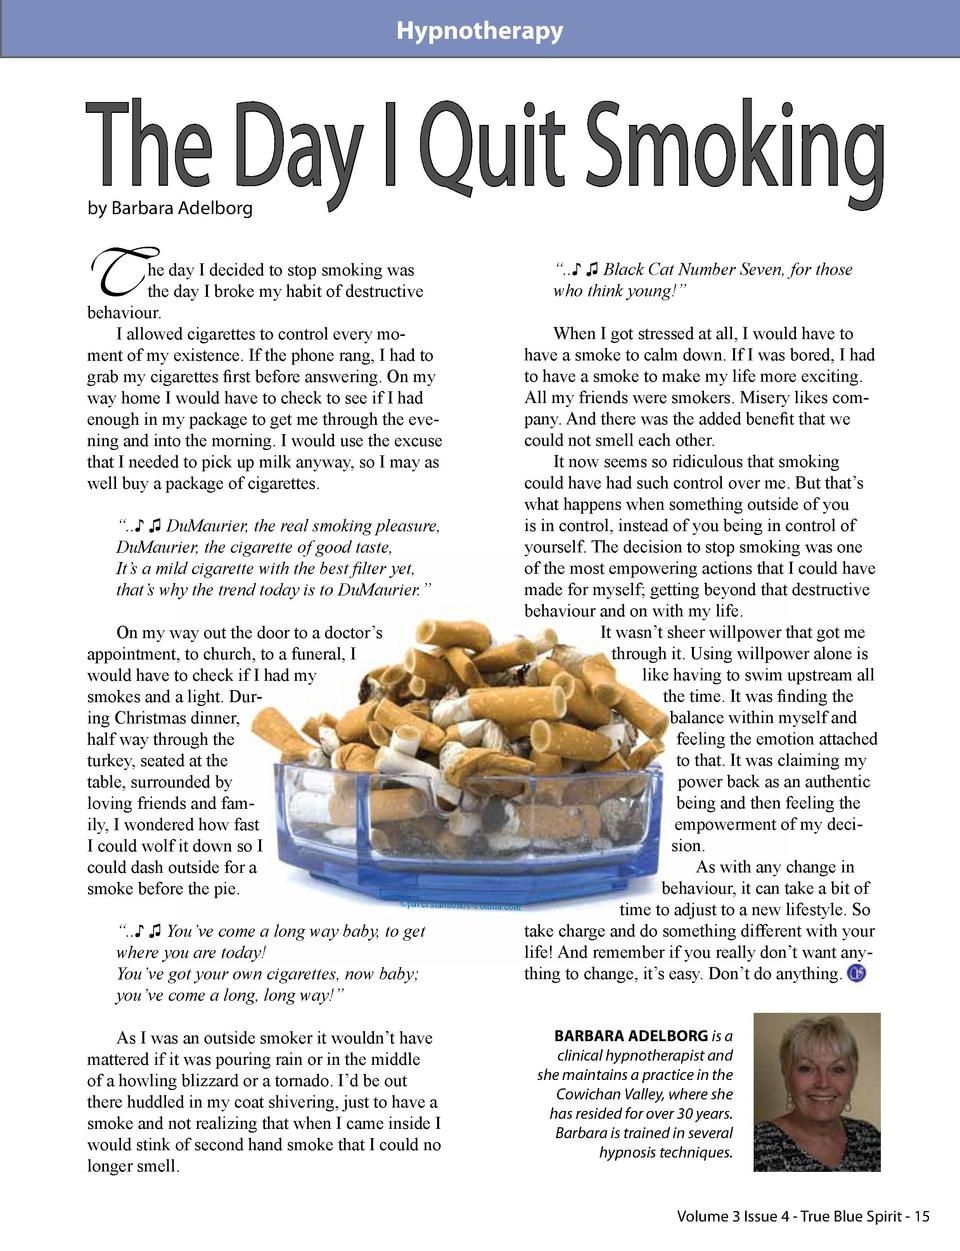 Hypnotherapy  The Day I Quit Smoking by Barbara Adelborg  T  he day I decided to stop smoking was the day I broke my habit...